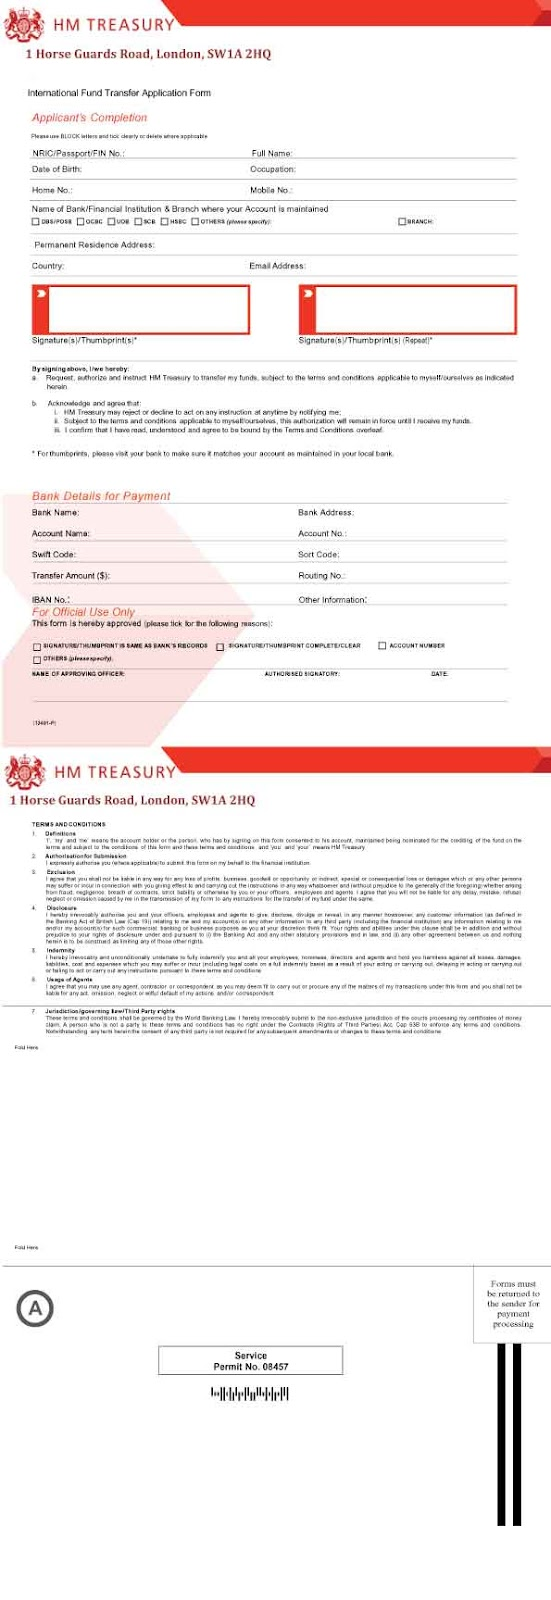 HM-Treasury-Form1 Job Application Form Illegal Questions on regarding sanctions medicare,